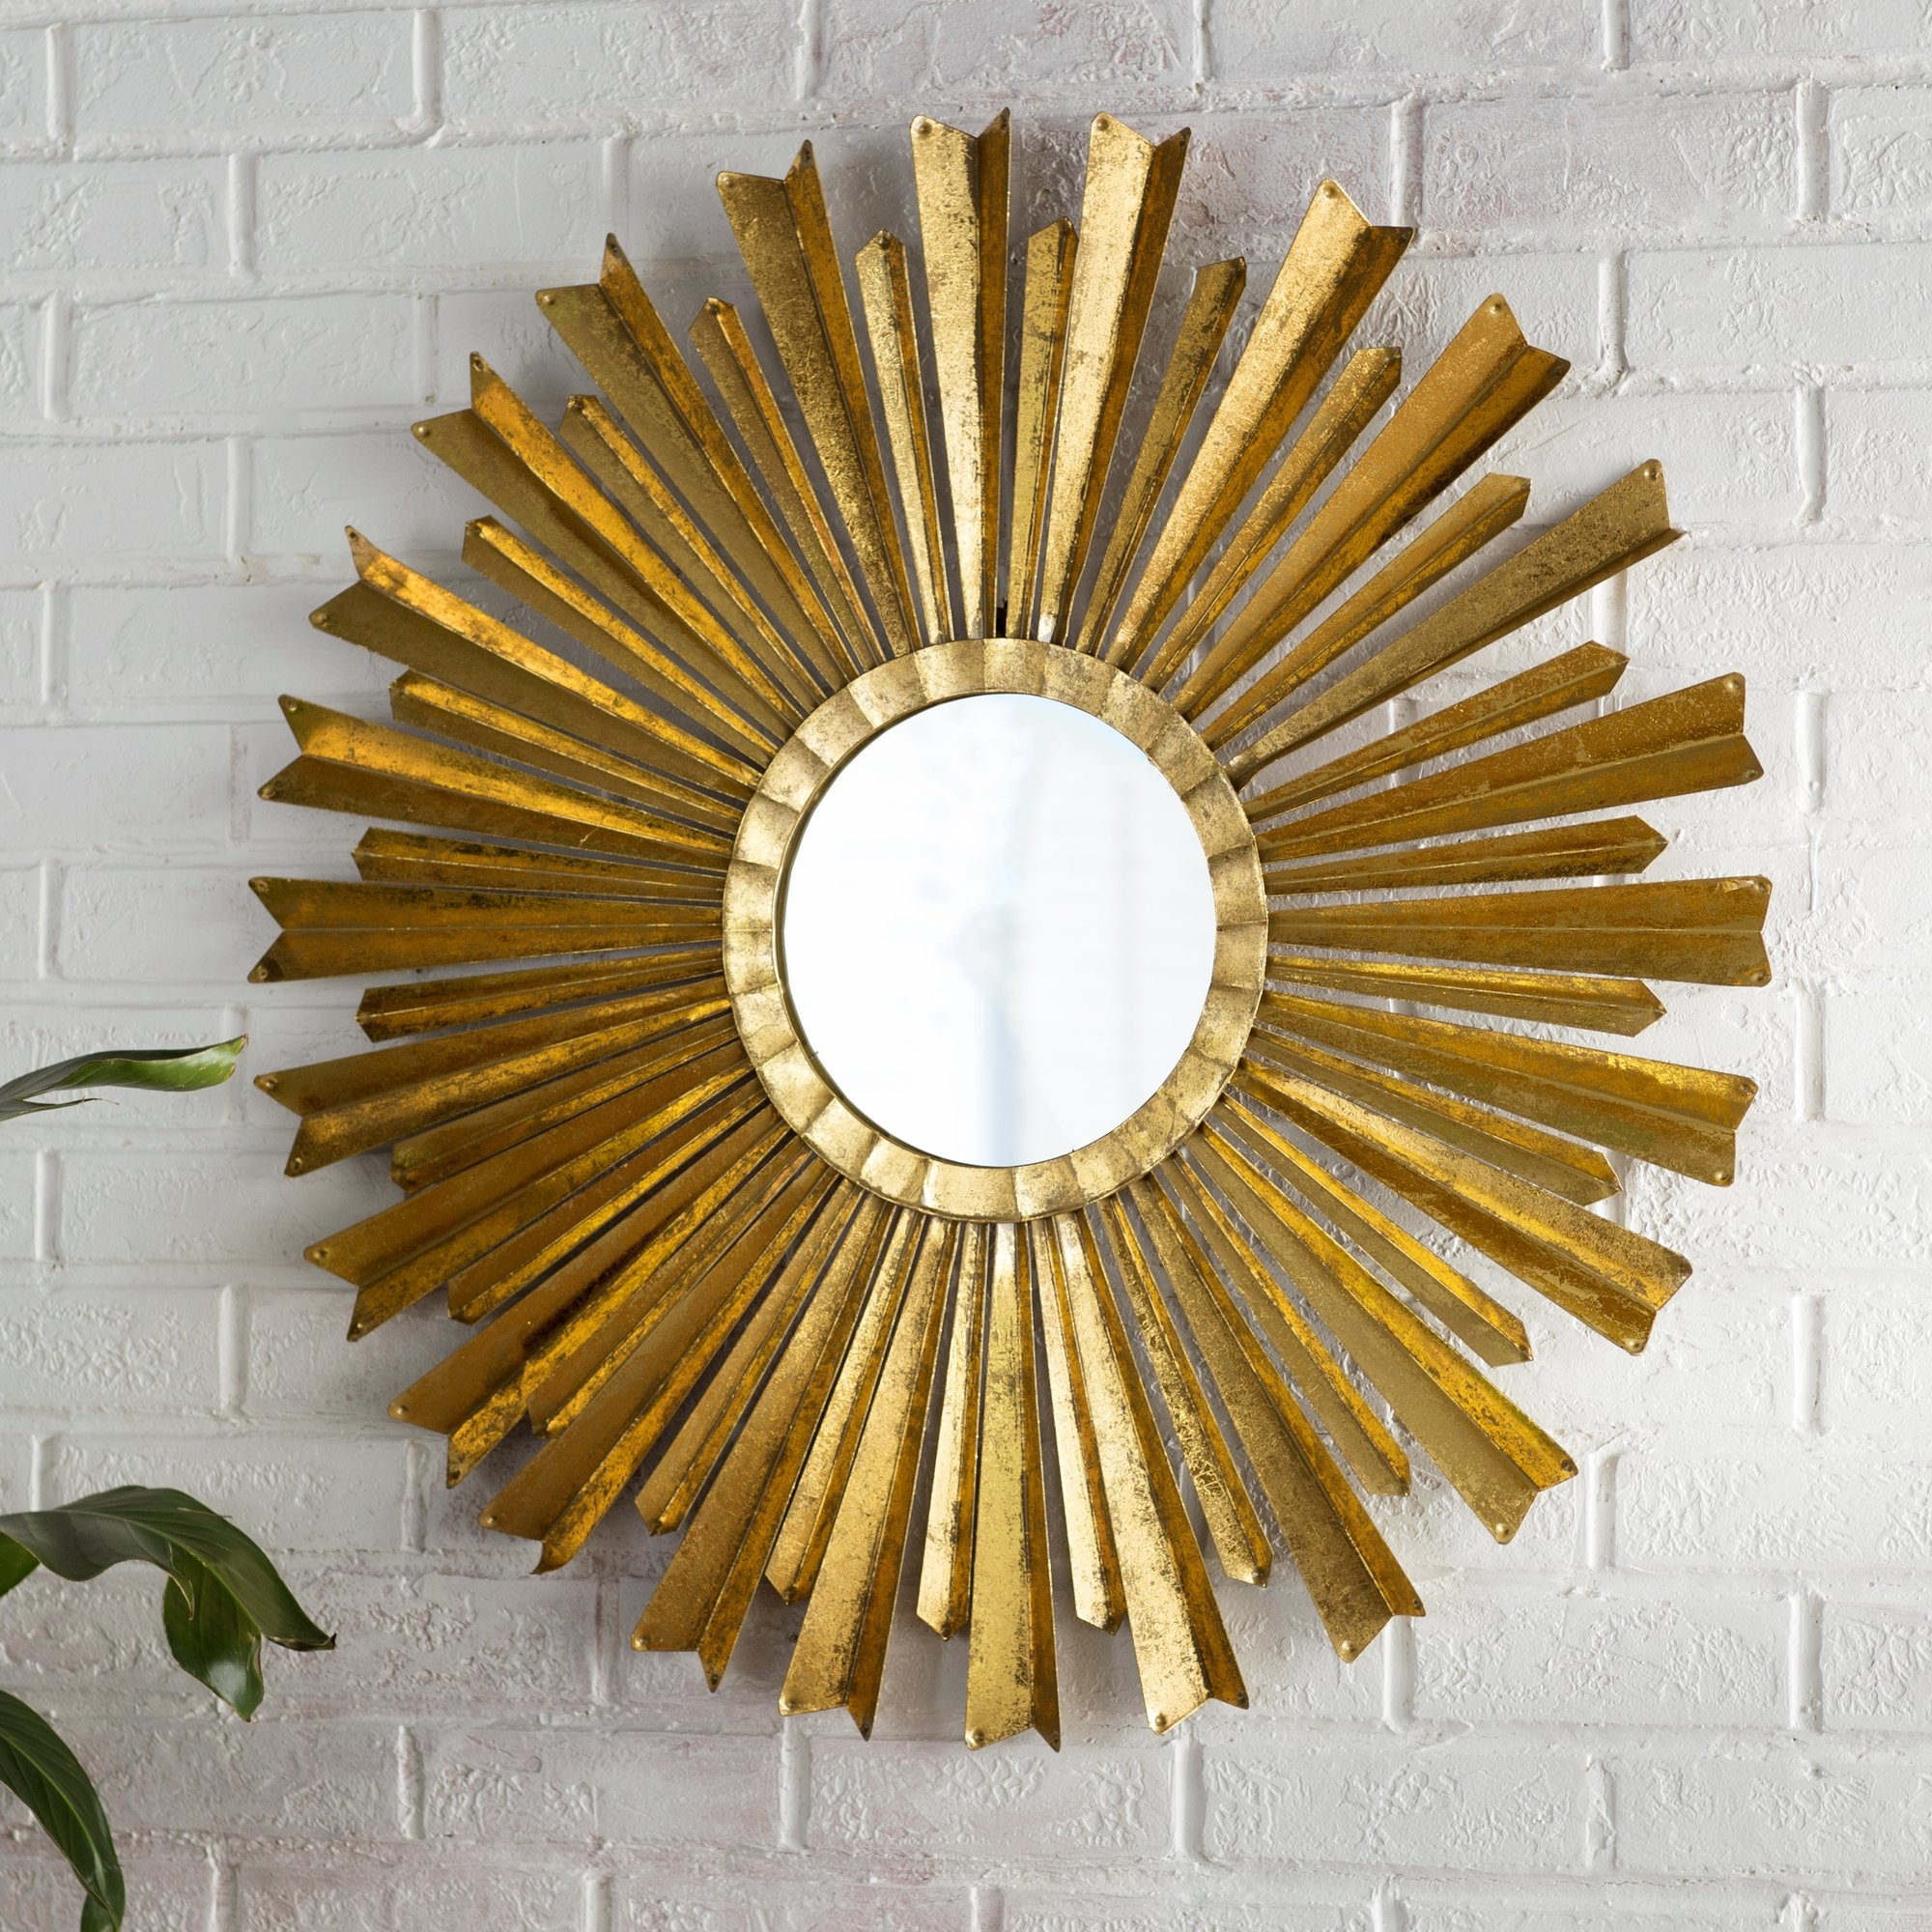 Sunburst Mirrors Youll Love Wayfair With Regard To Extra Large Sunburst Mirror (View 15 of 15)